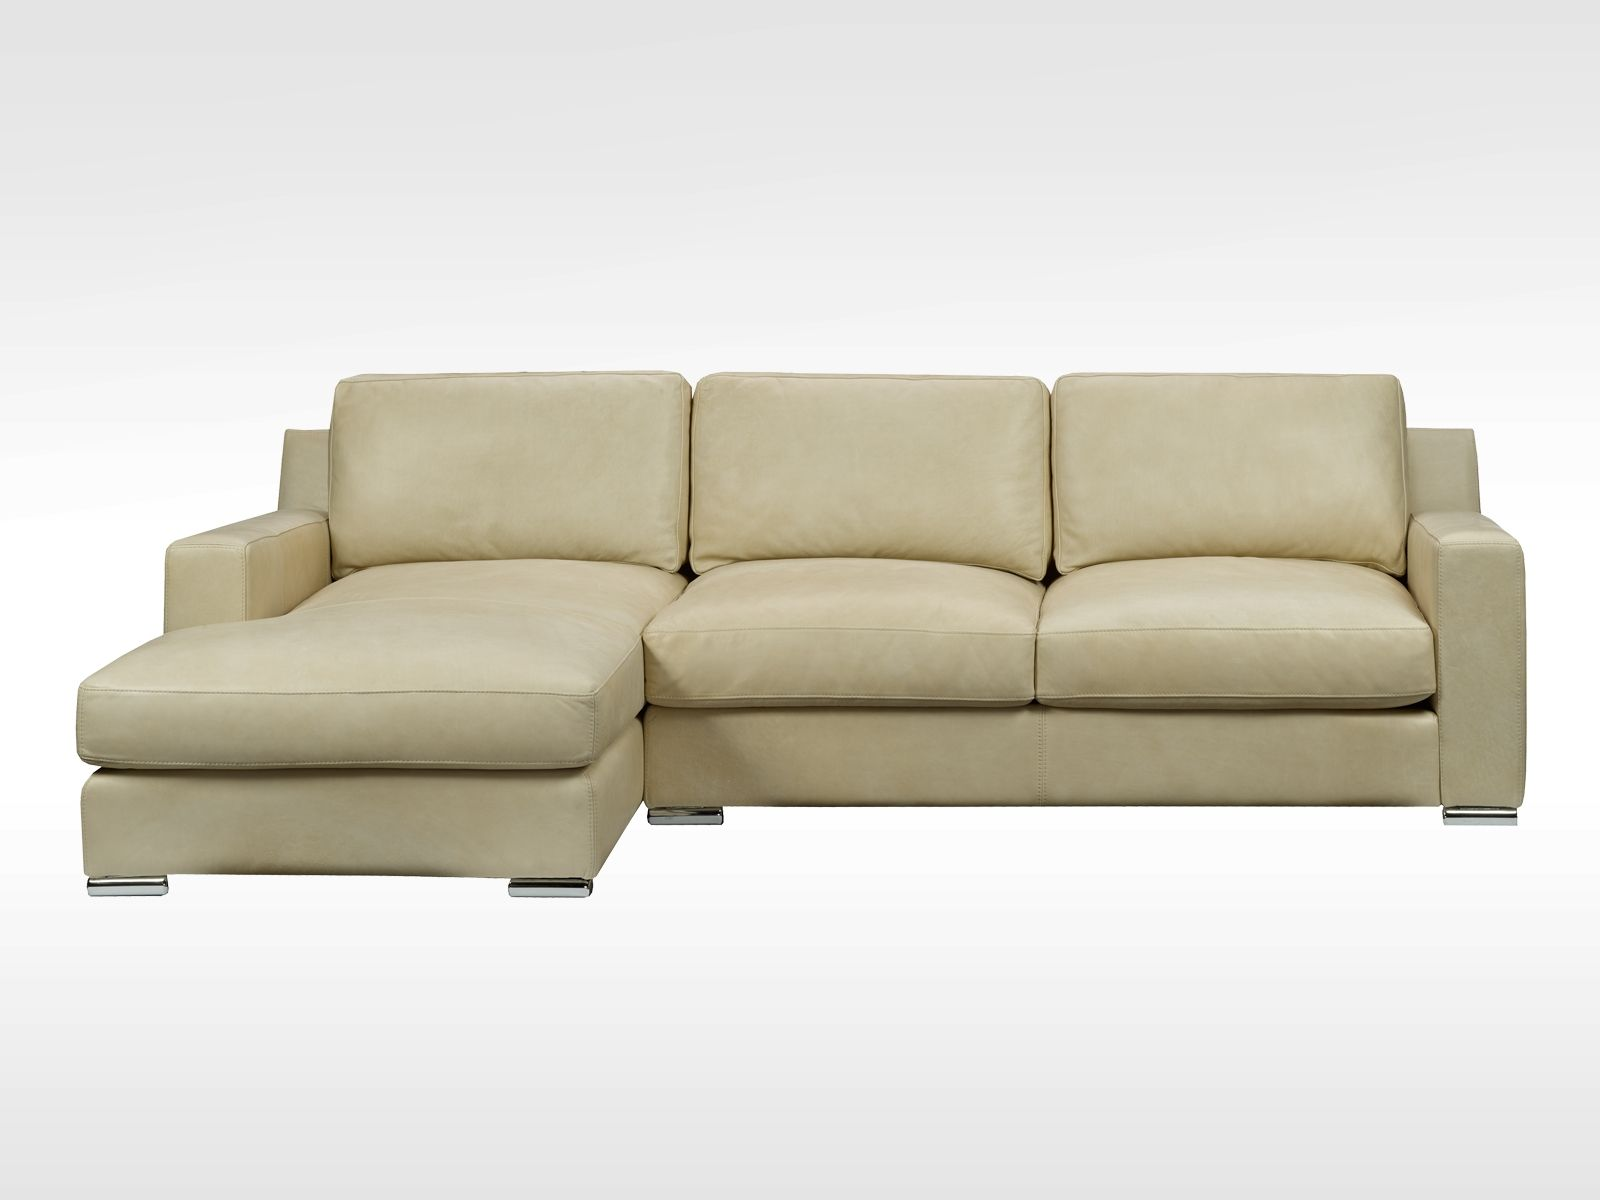 Attractive Brentwood Leather Sofa Set